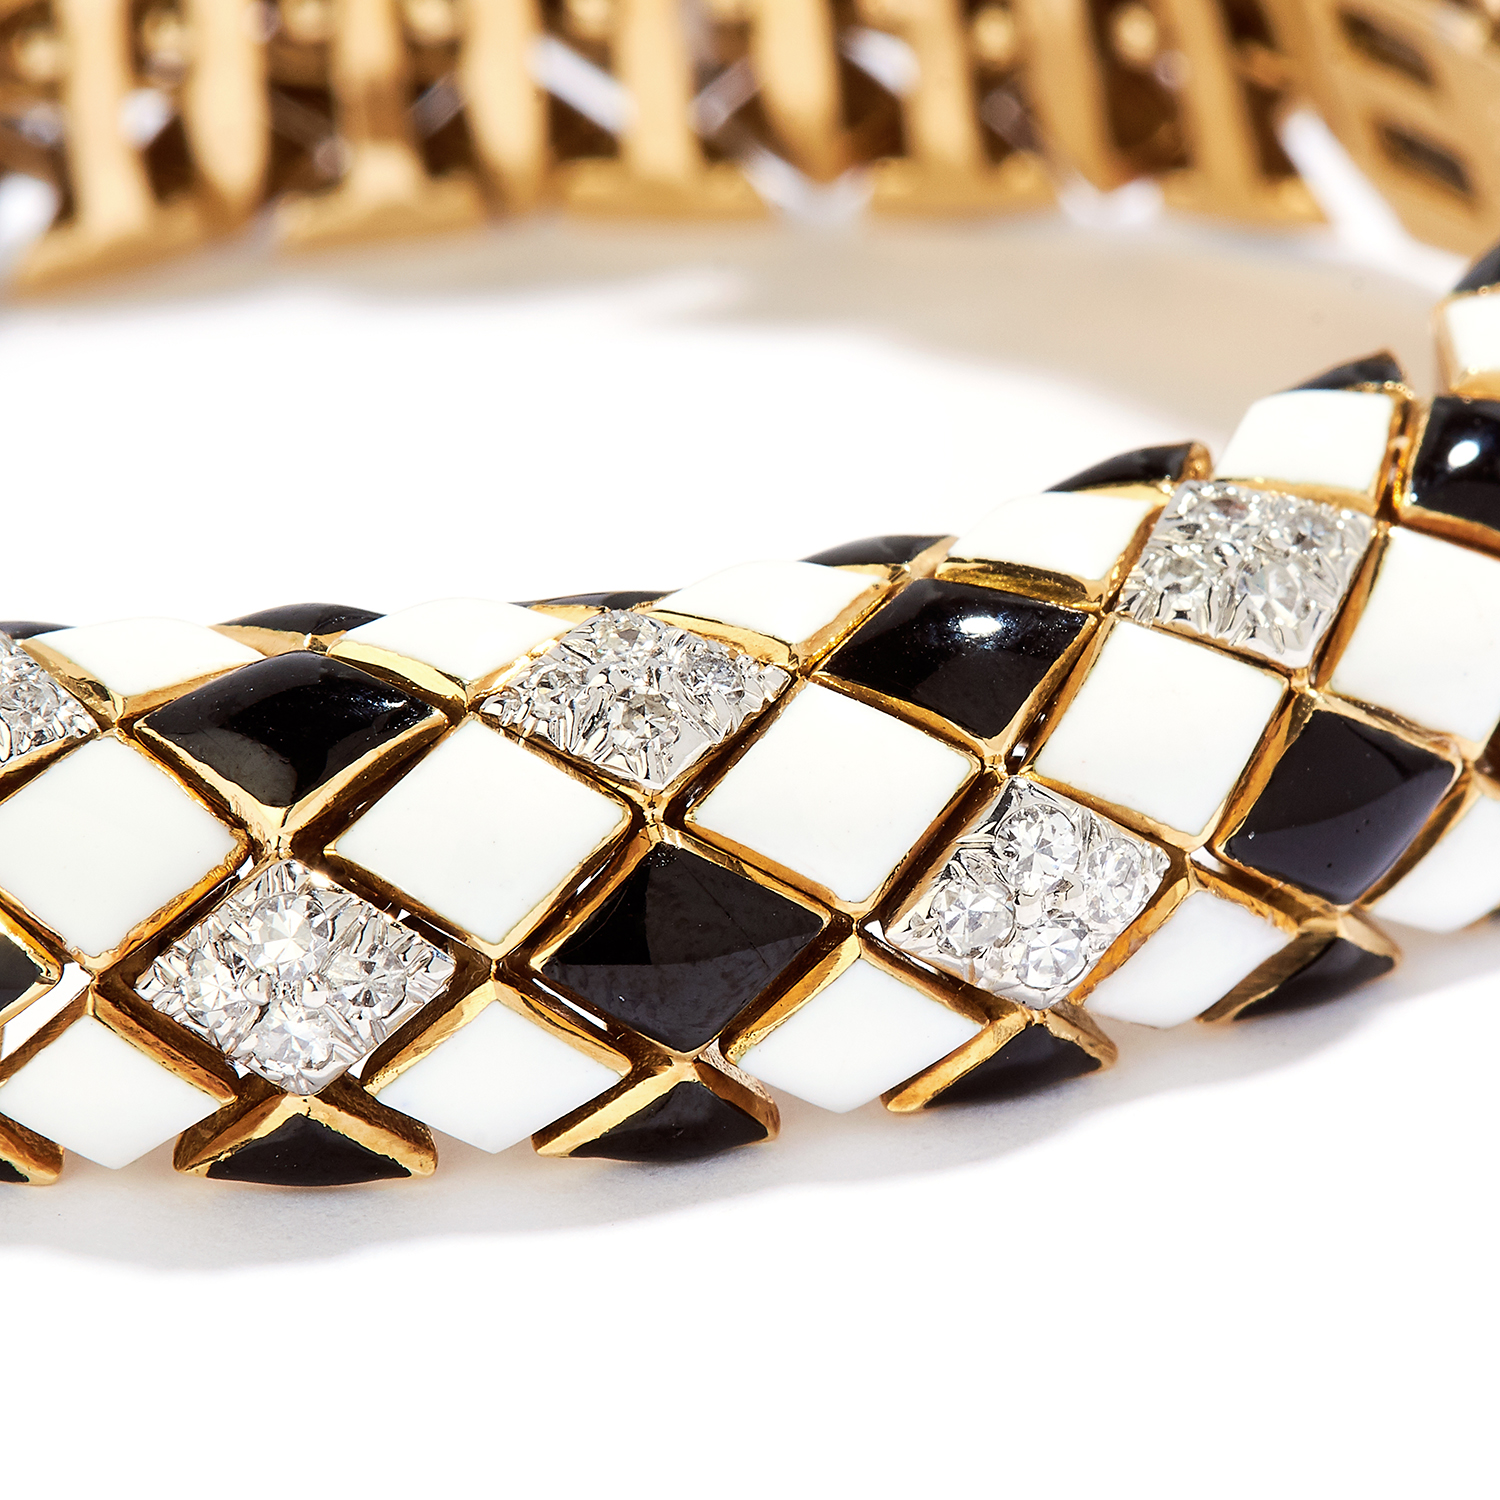 A VINTAGE ENAMEL AND DIAMOND HARLEQUIN BRACELET, DAVID WEBB in 18ct yellow gold, the articulated - Image 2 of 2